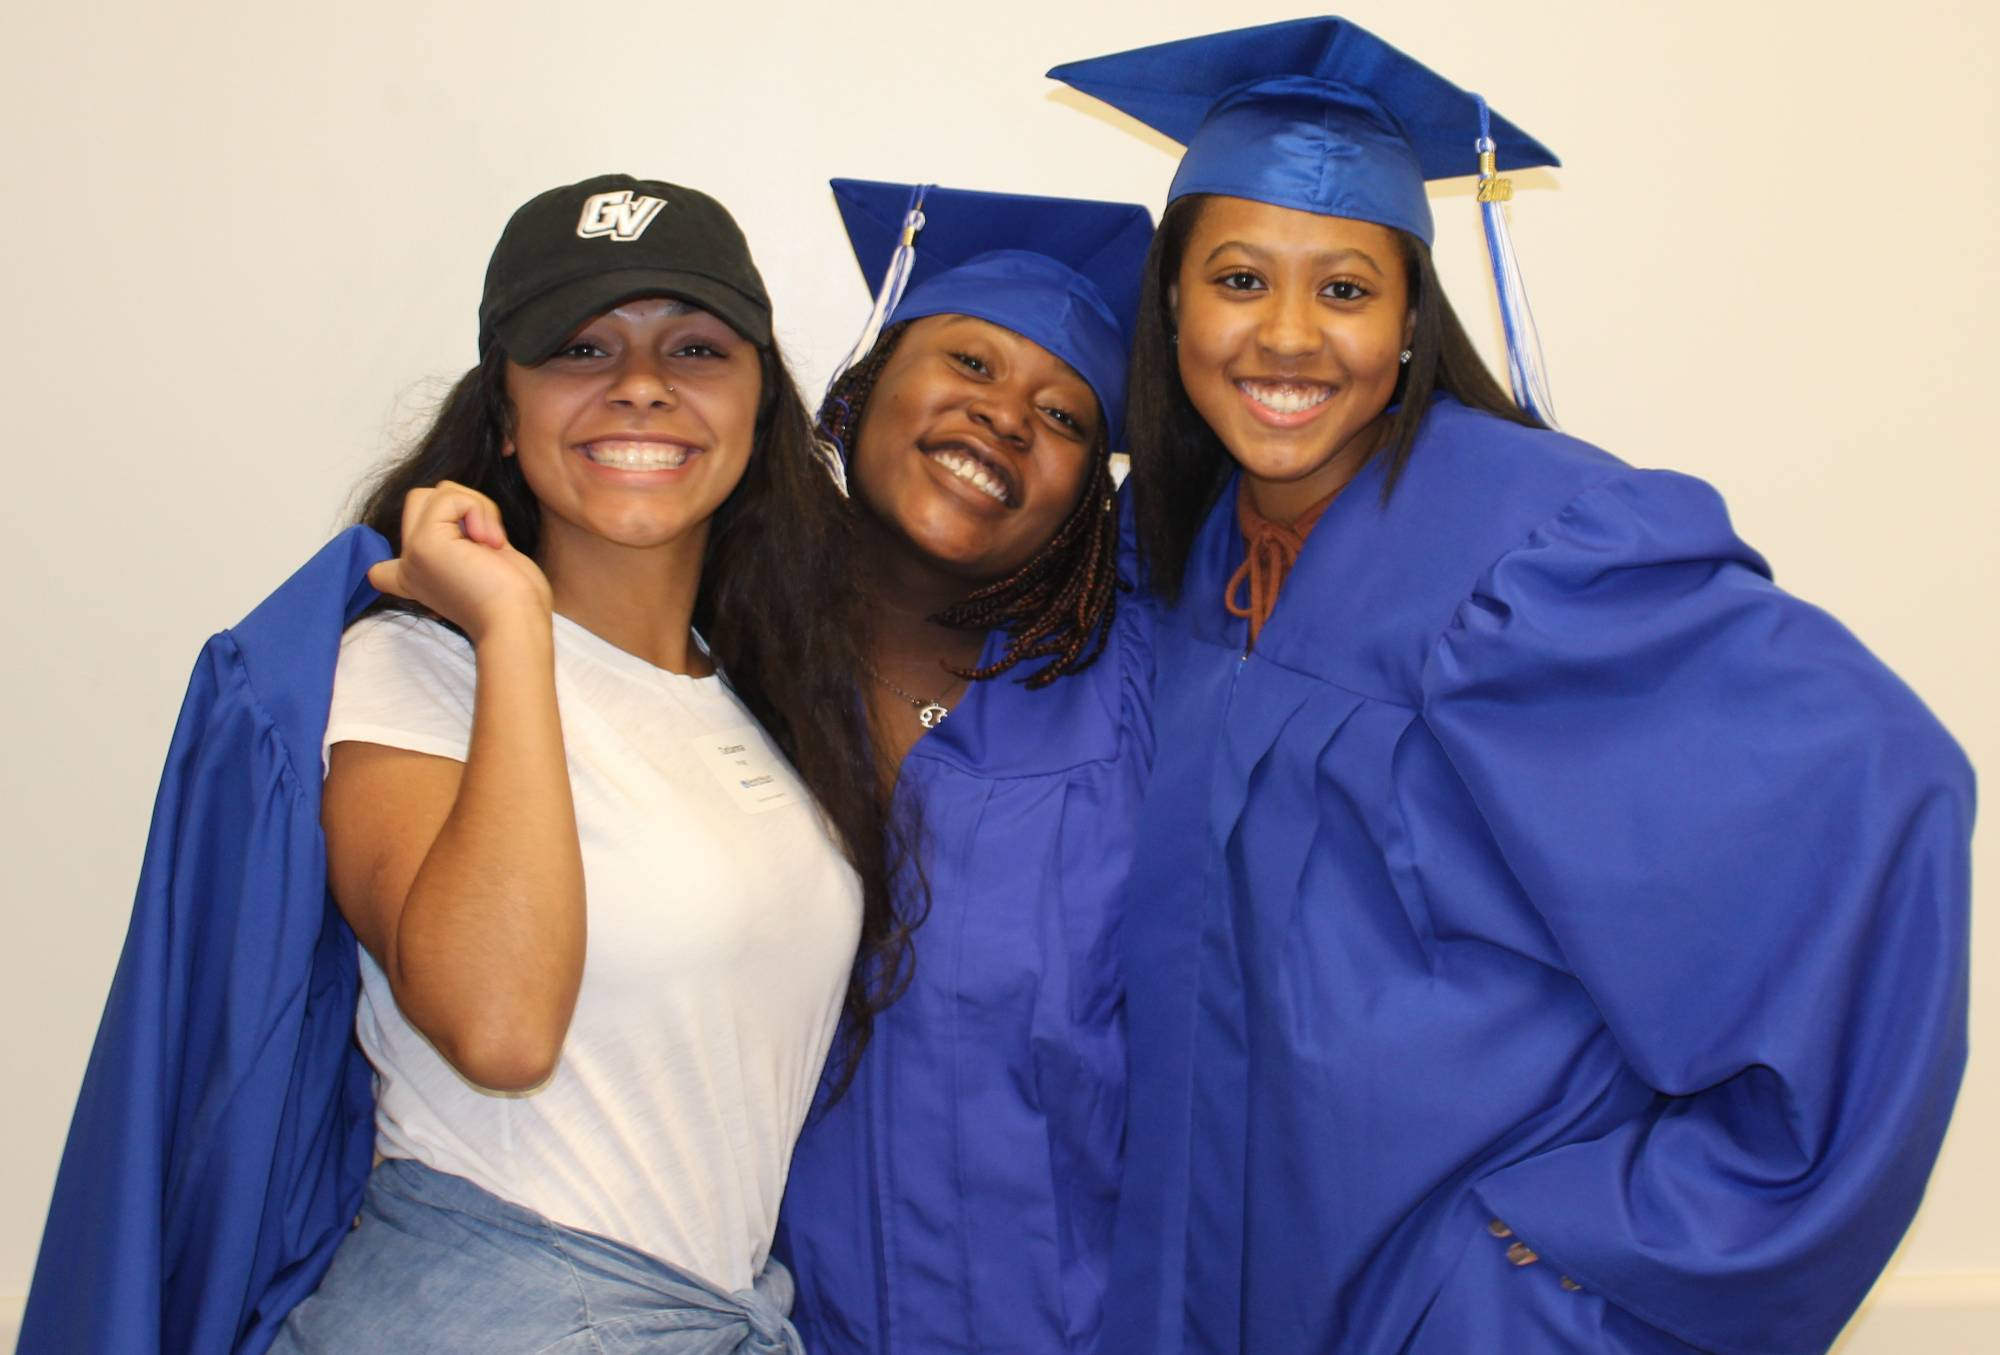 Three students smiling proudly wearing their blue Grand Valley graduation cap and gowns.